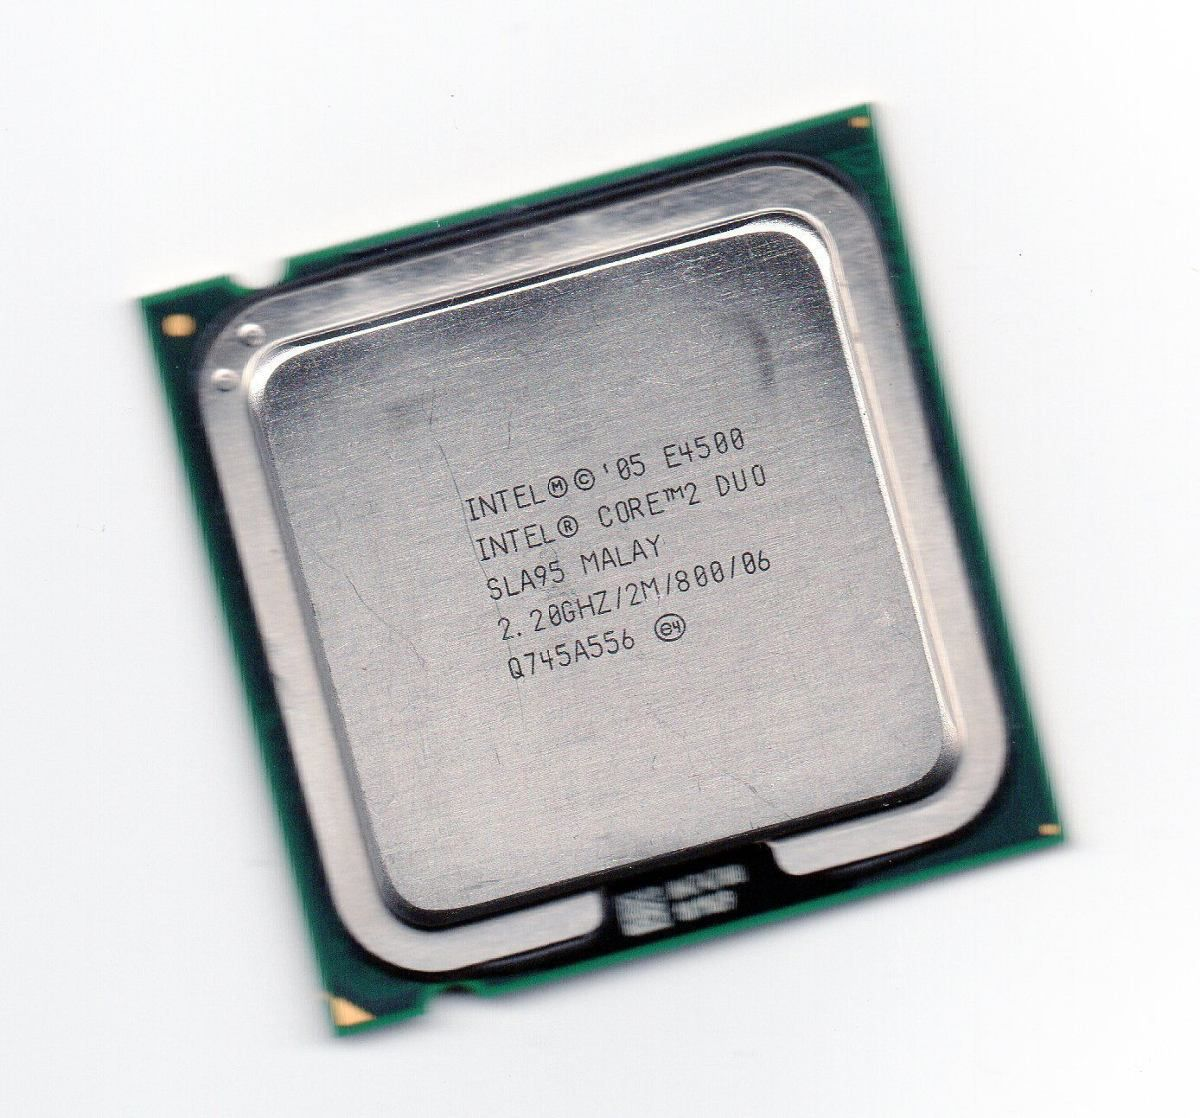 CPU 775 | CORE 2 DUO E4500 | SLA95 | INTEL | 2.20GHZ